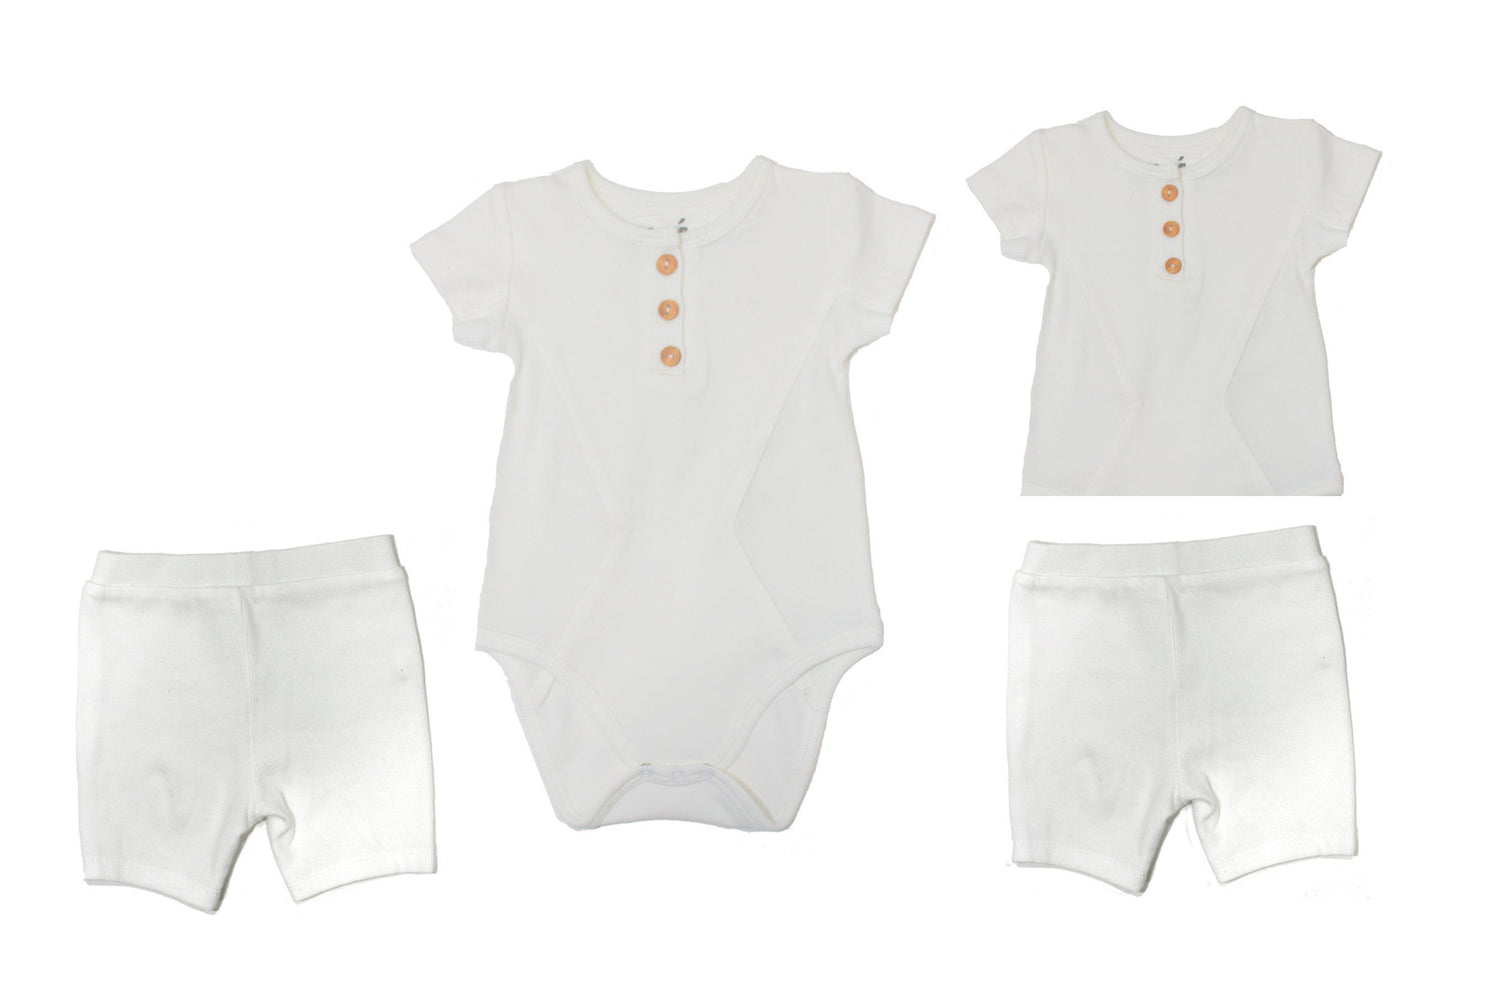 Two Piece Set Baby Sets Maniere Accessories White 3 Months